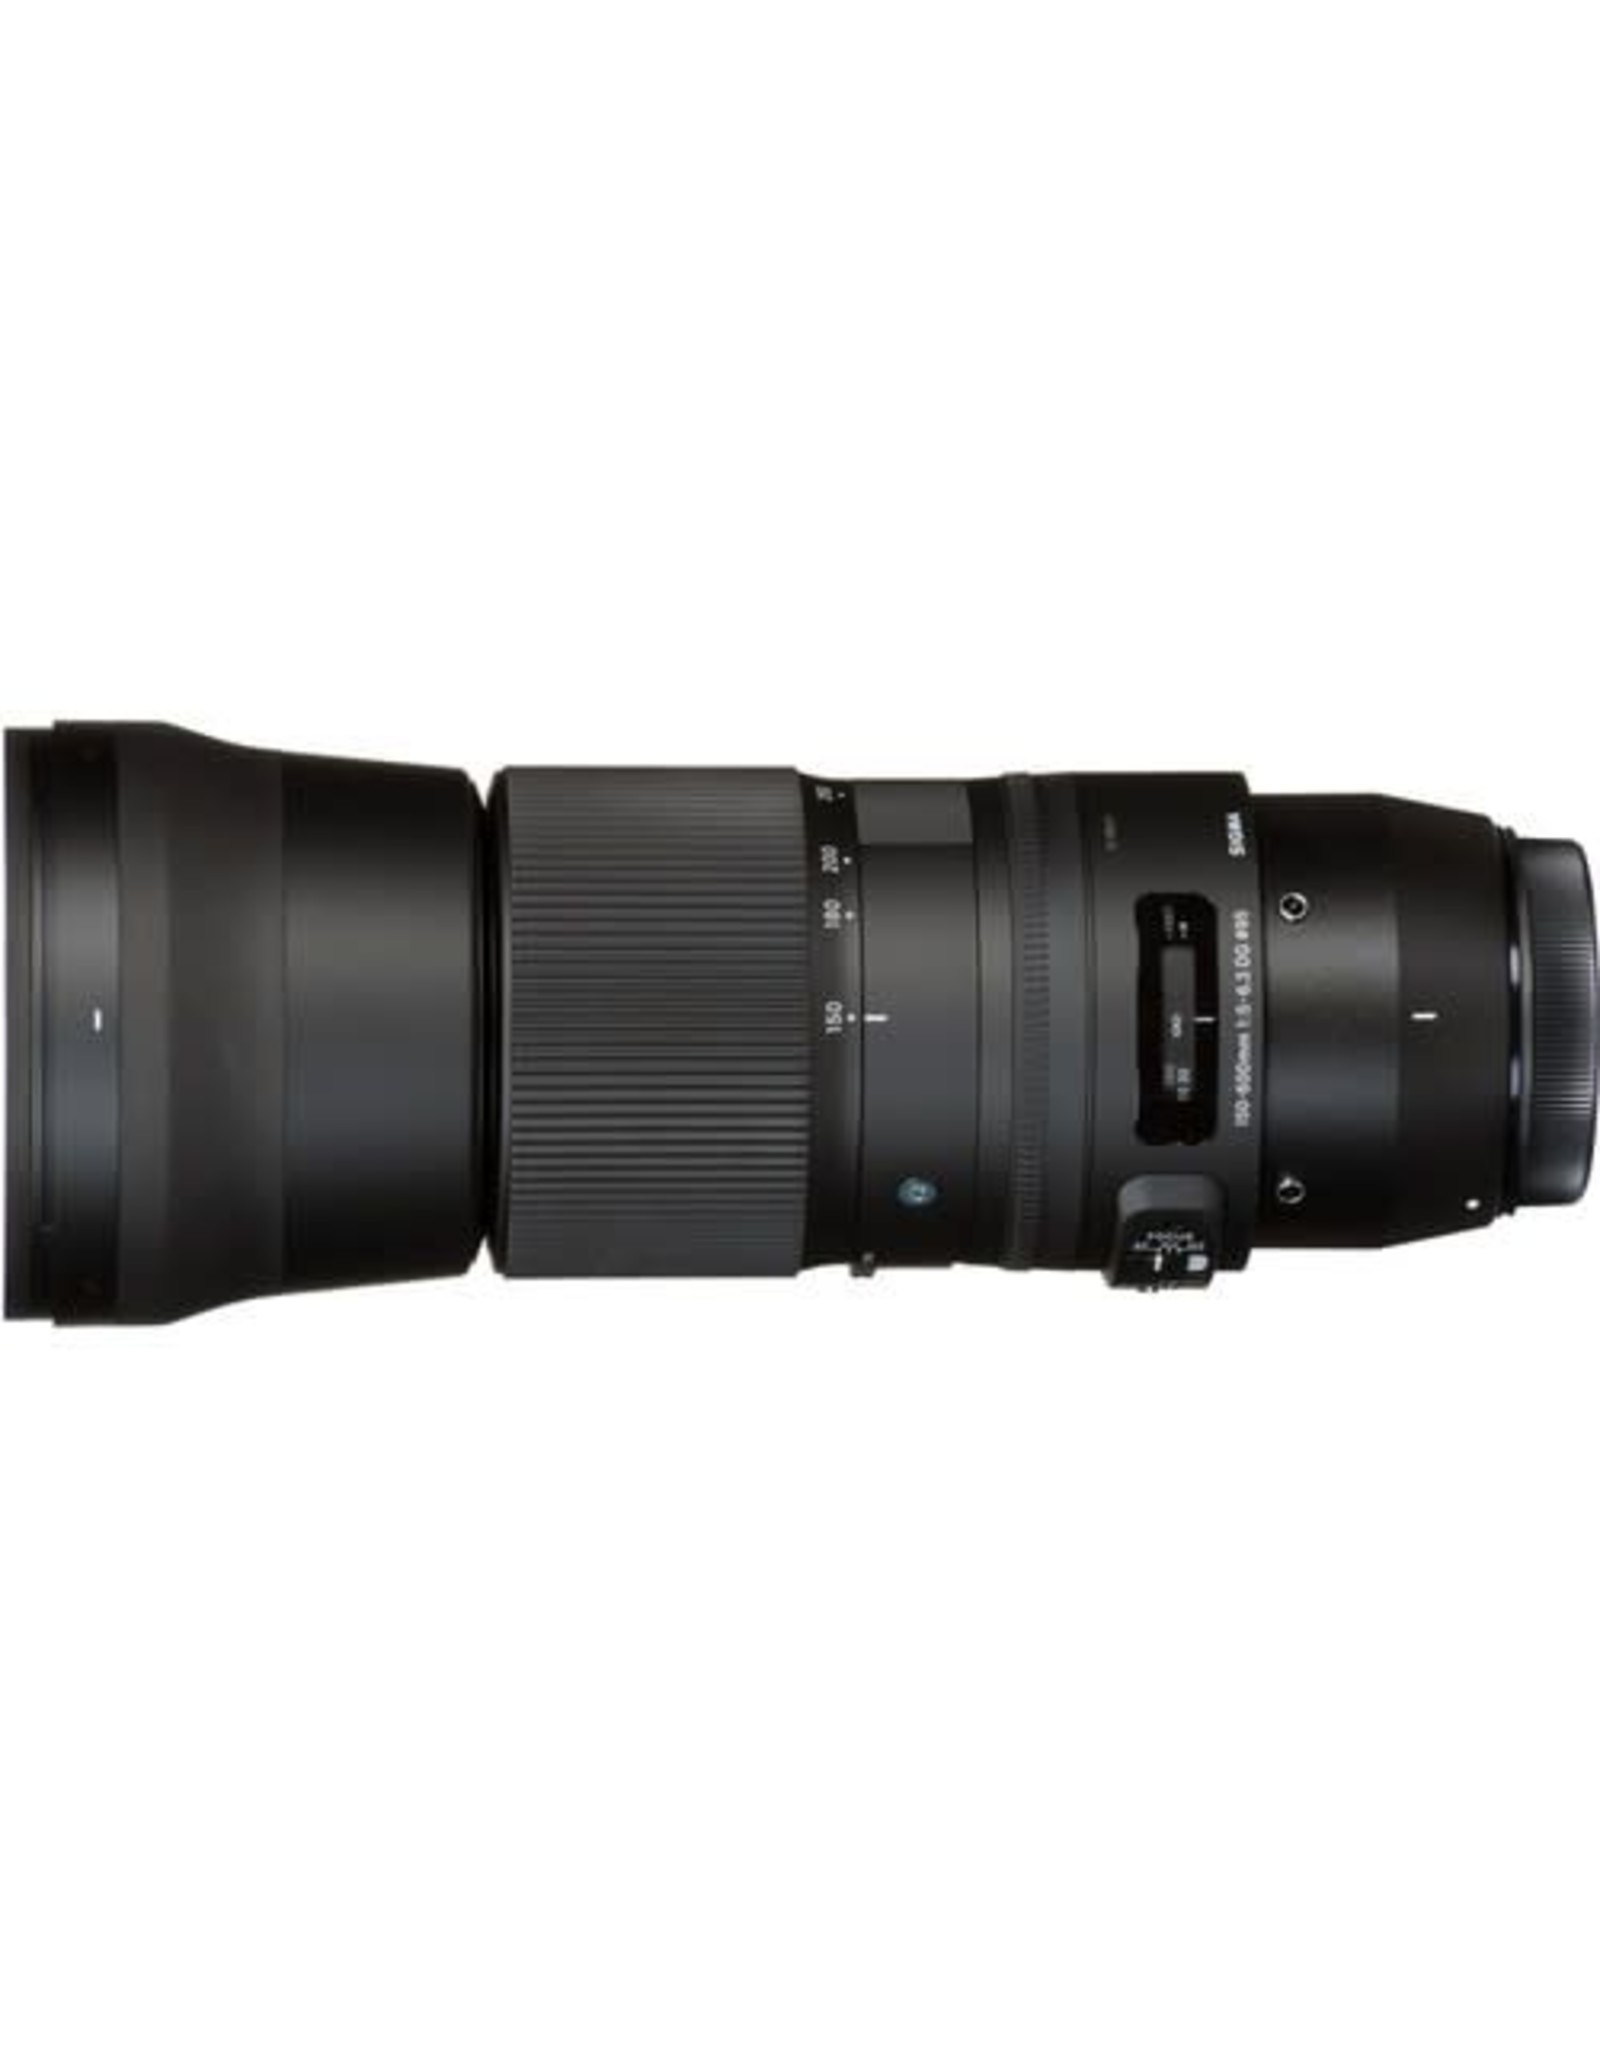 Sigma Sigma 150-600mm 5-6.3 Contemporary DG OS HSM (Specify Mount Type)